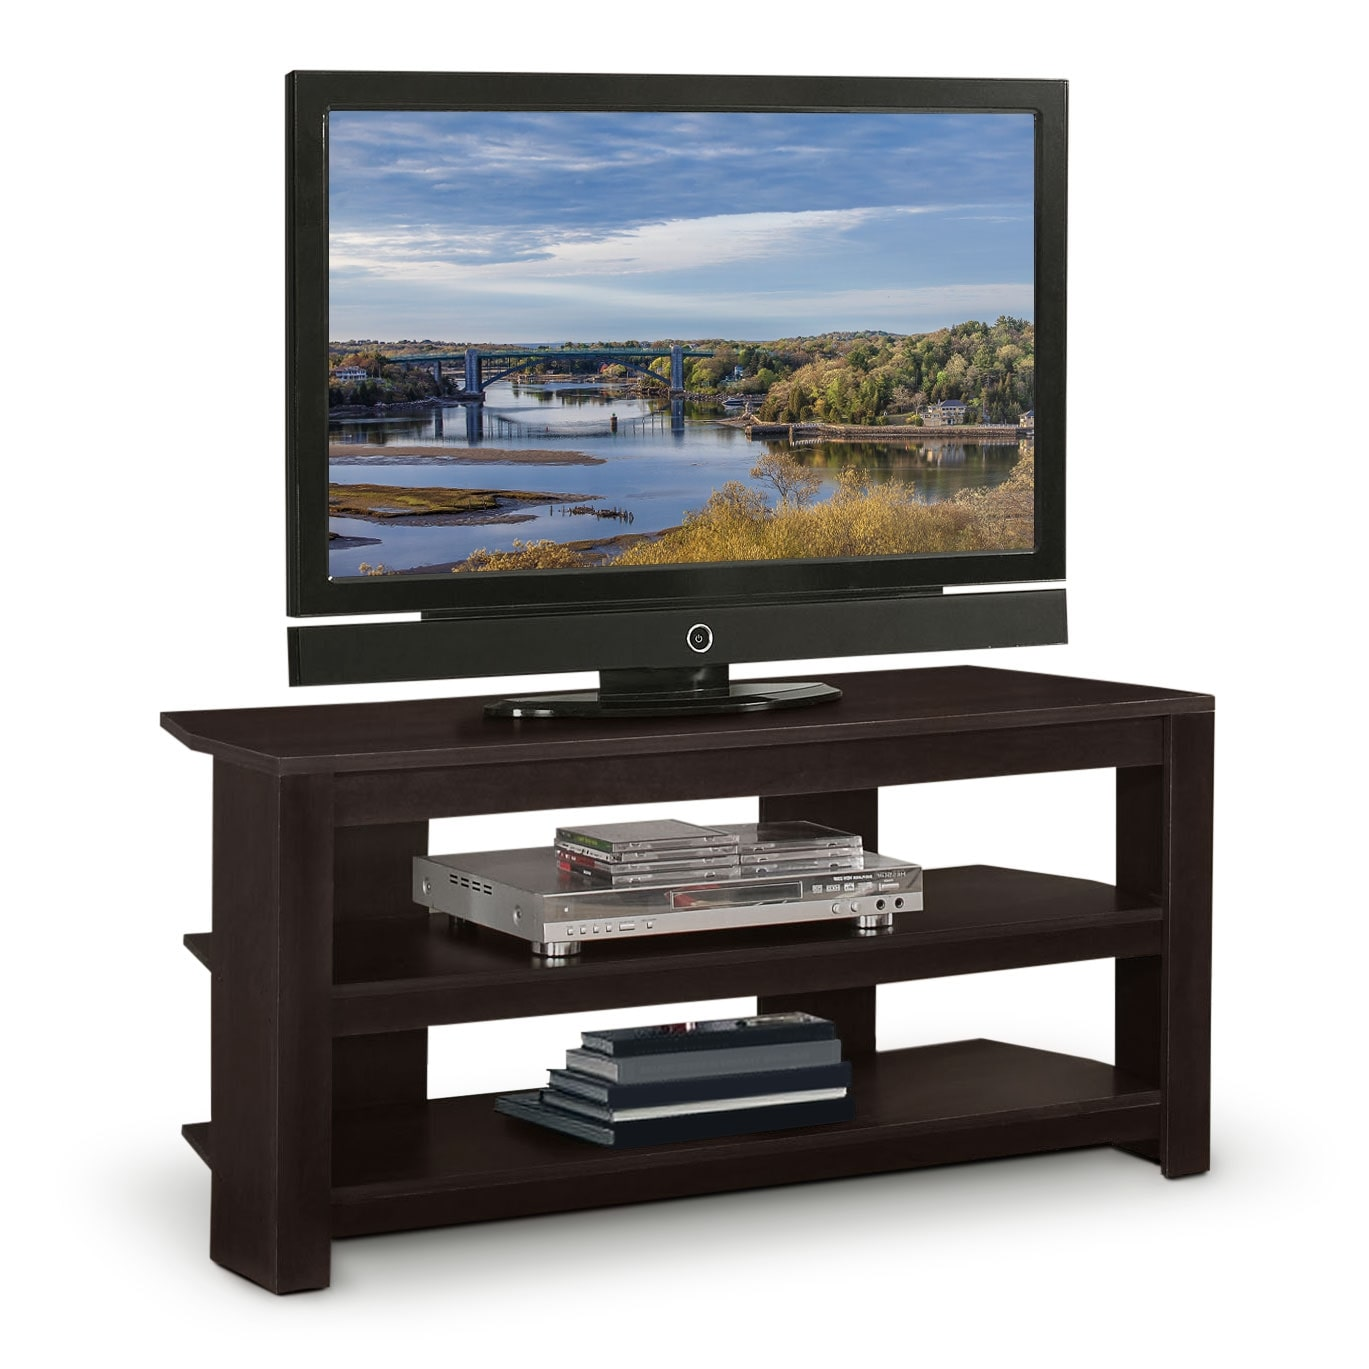 Dimension Table Tv Fenrez Com Sammlung Von Design Zeichnungen  # Dimension Table Tv